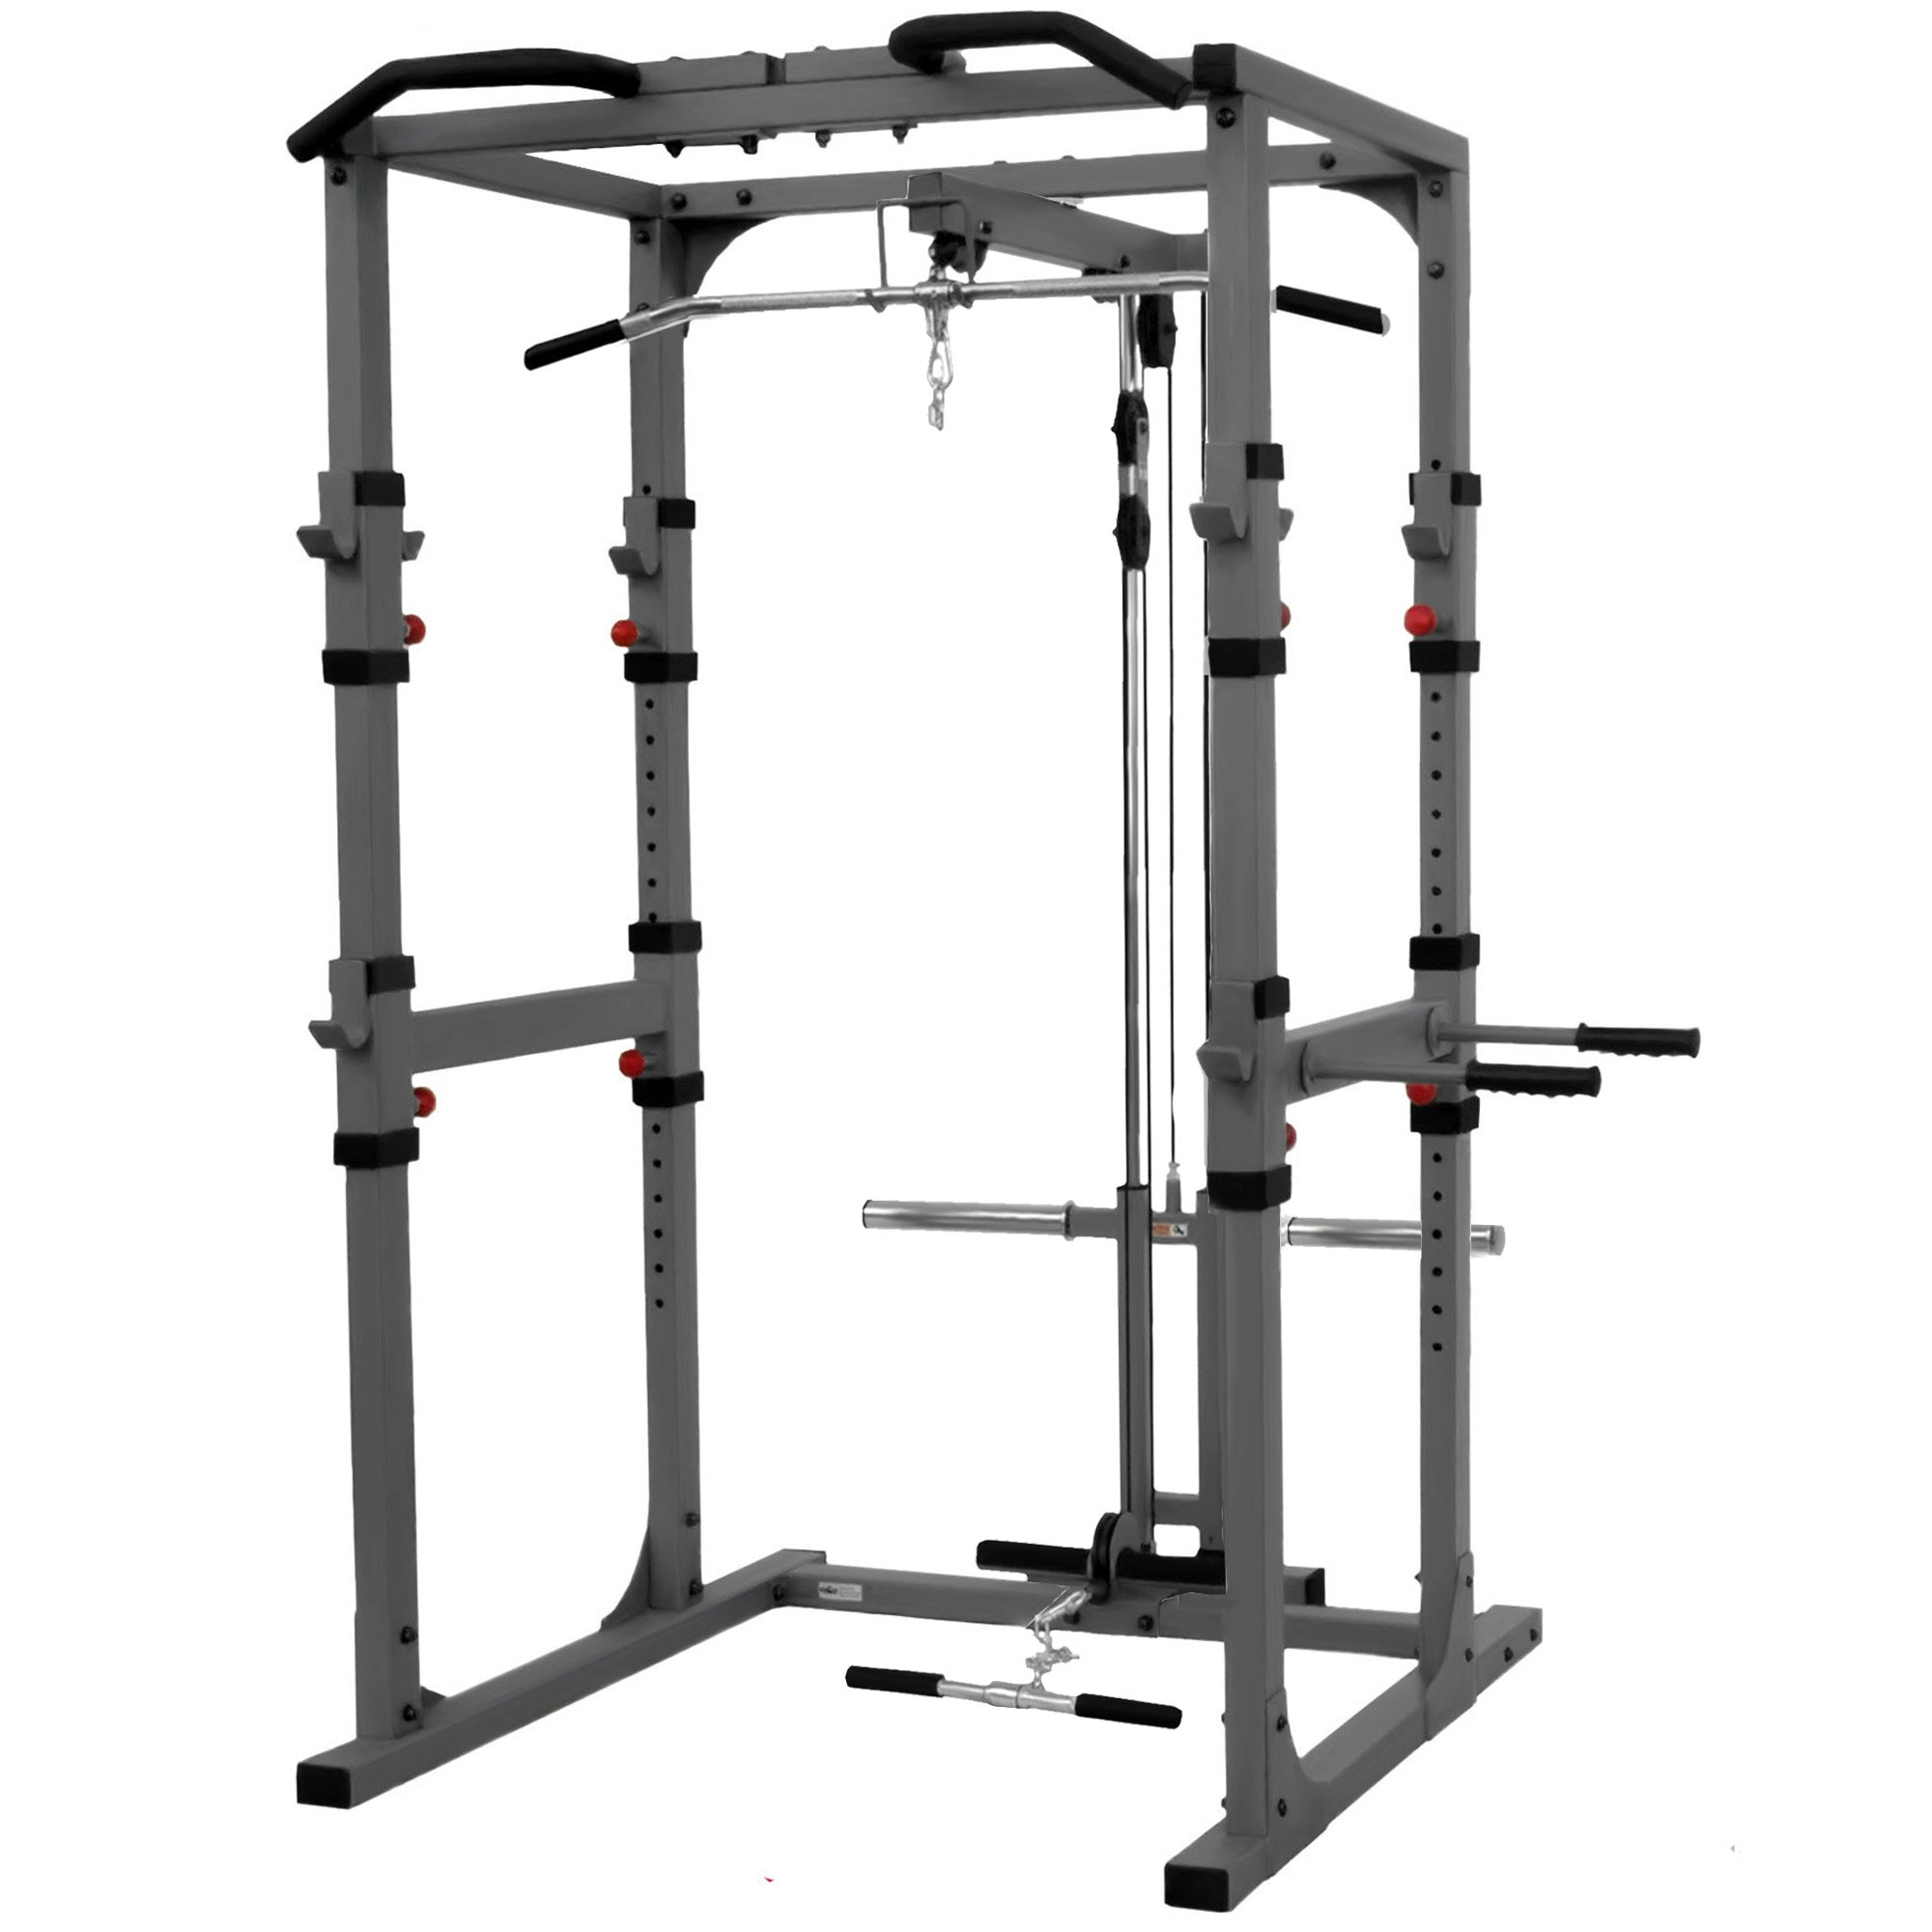 XMark Fitness Heavy Duty 11-Gauge 2'' X 3'' and 2'' X 2'' Steel Mainframe Multi-Functional Power Cage With Lat Pulldown and Low Row Attachment Accommodates Standard and Olympic Plate Weights by XMark Fitness